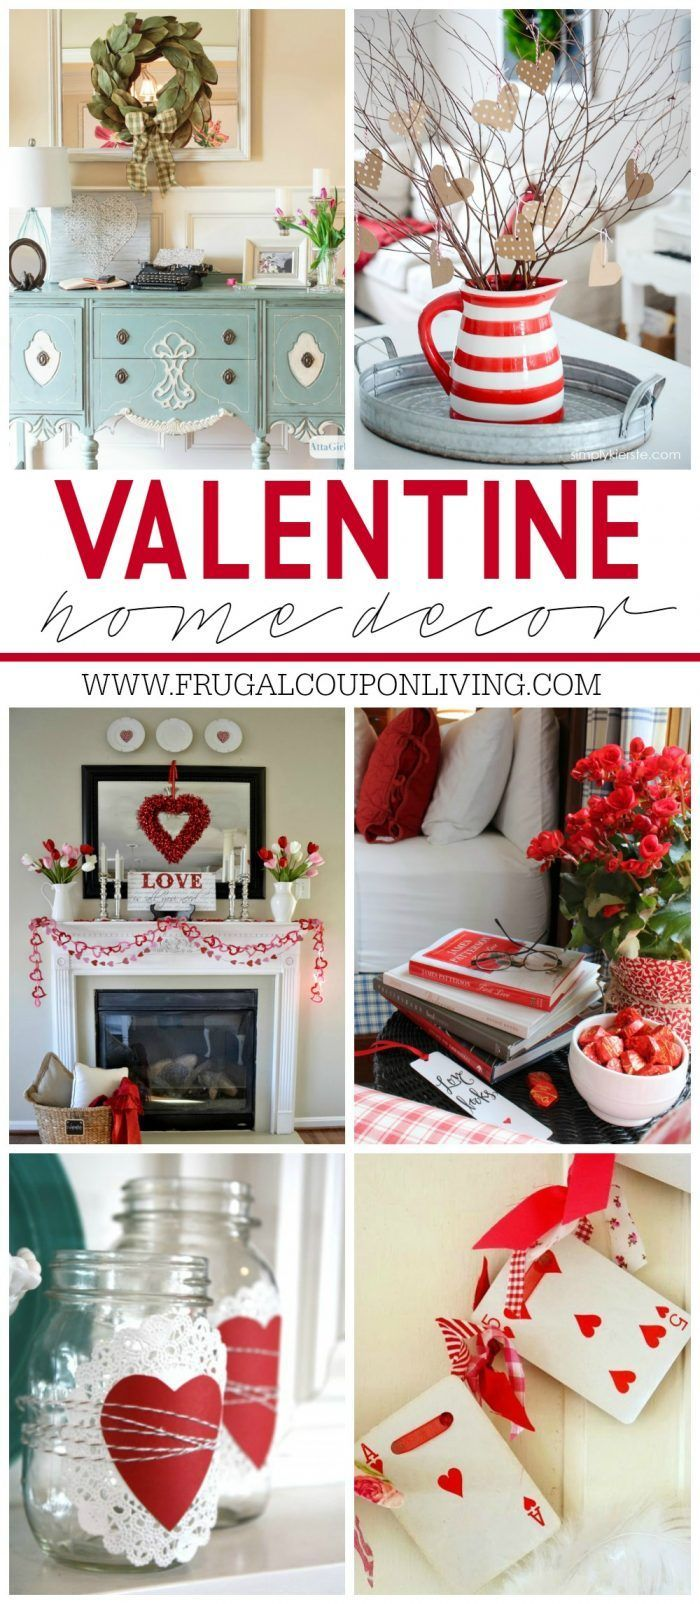 Crowdsourced Ideas For A Unique And Thrifty Valentines - oukas.info